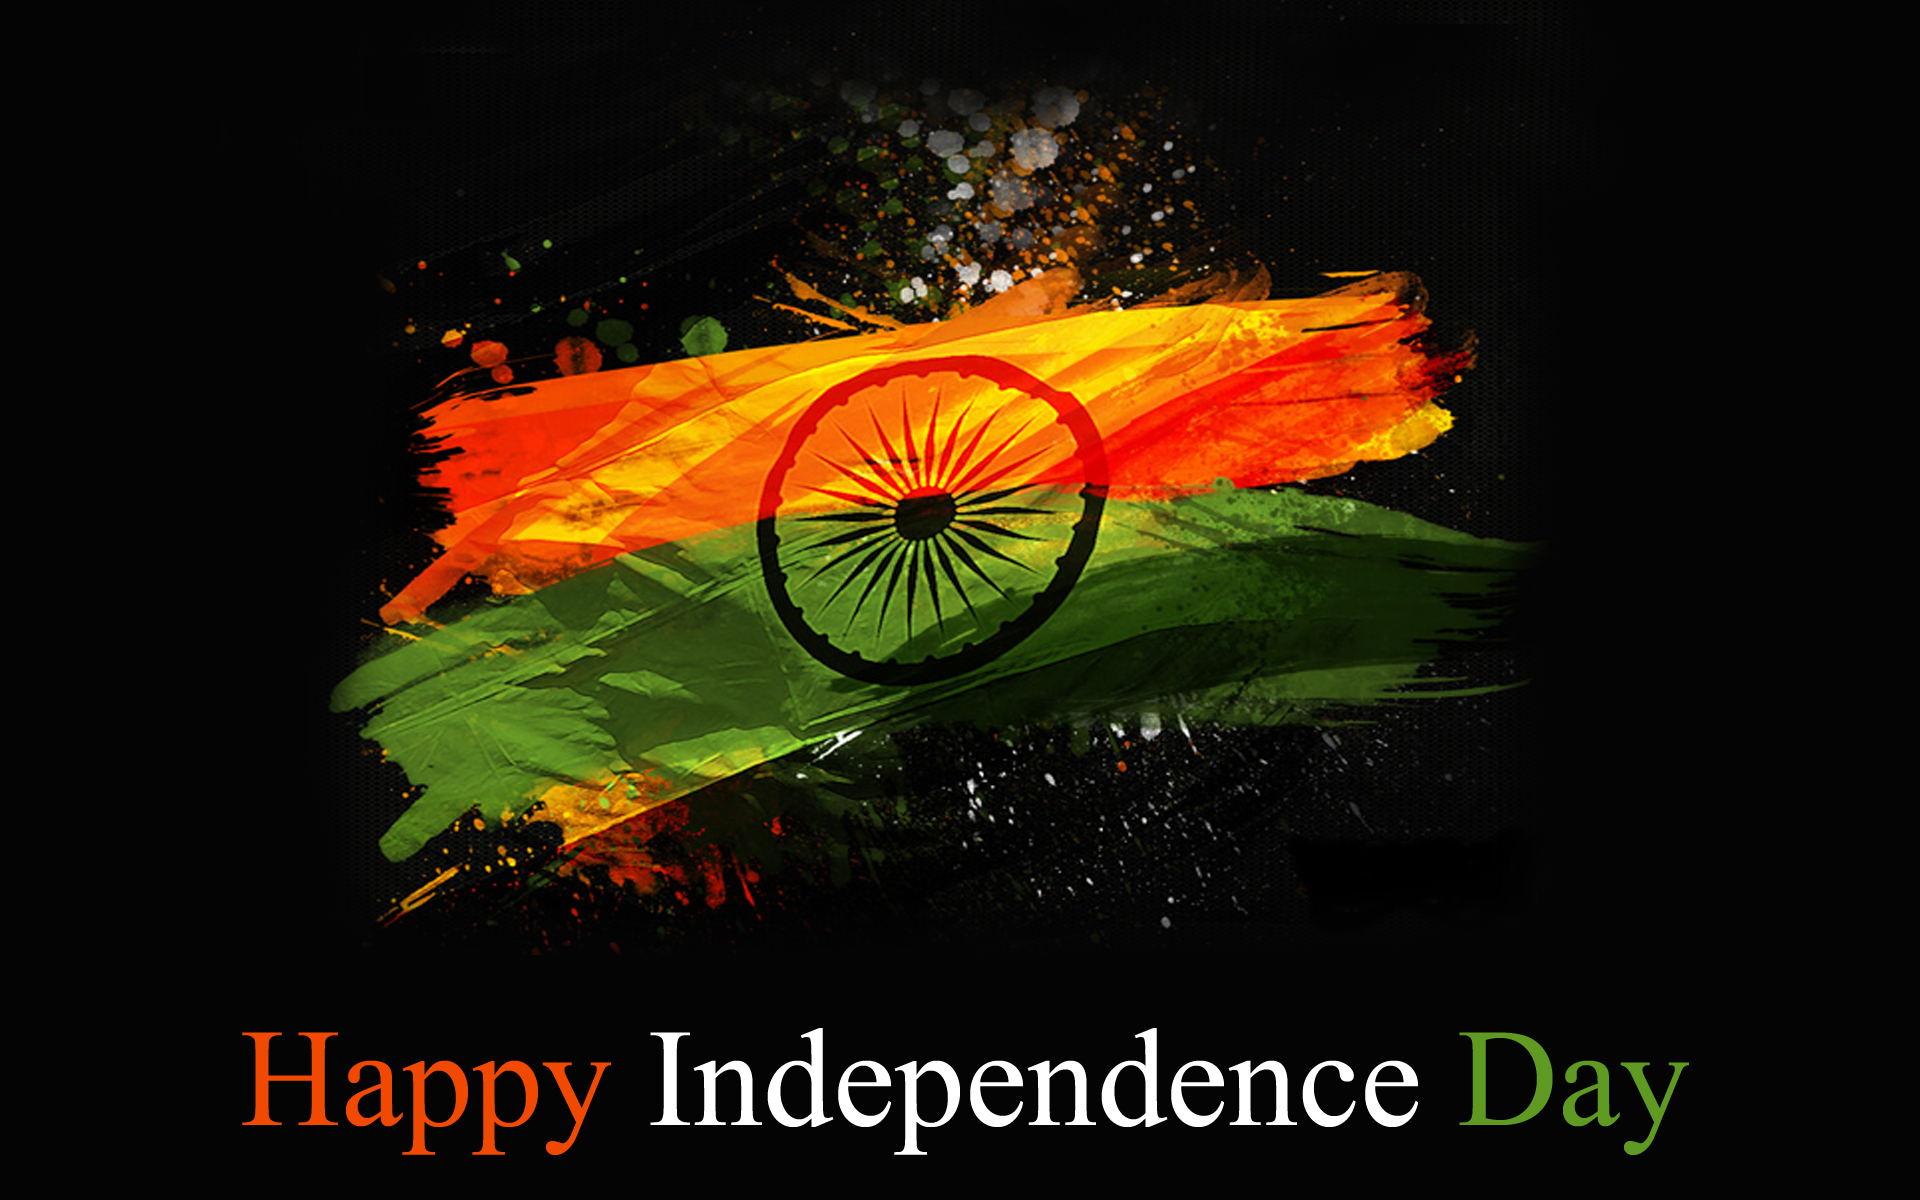 Day Happy Hd Indpeneence: Happy Independence Day 2018 Wishes And Messages In English